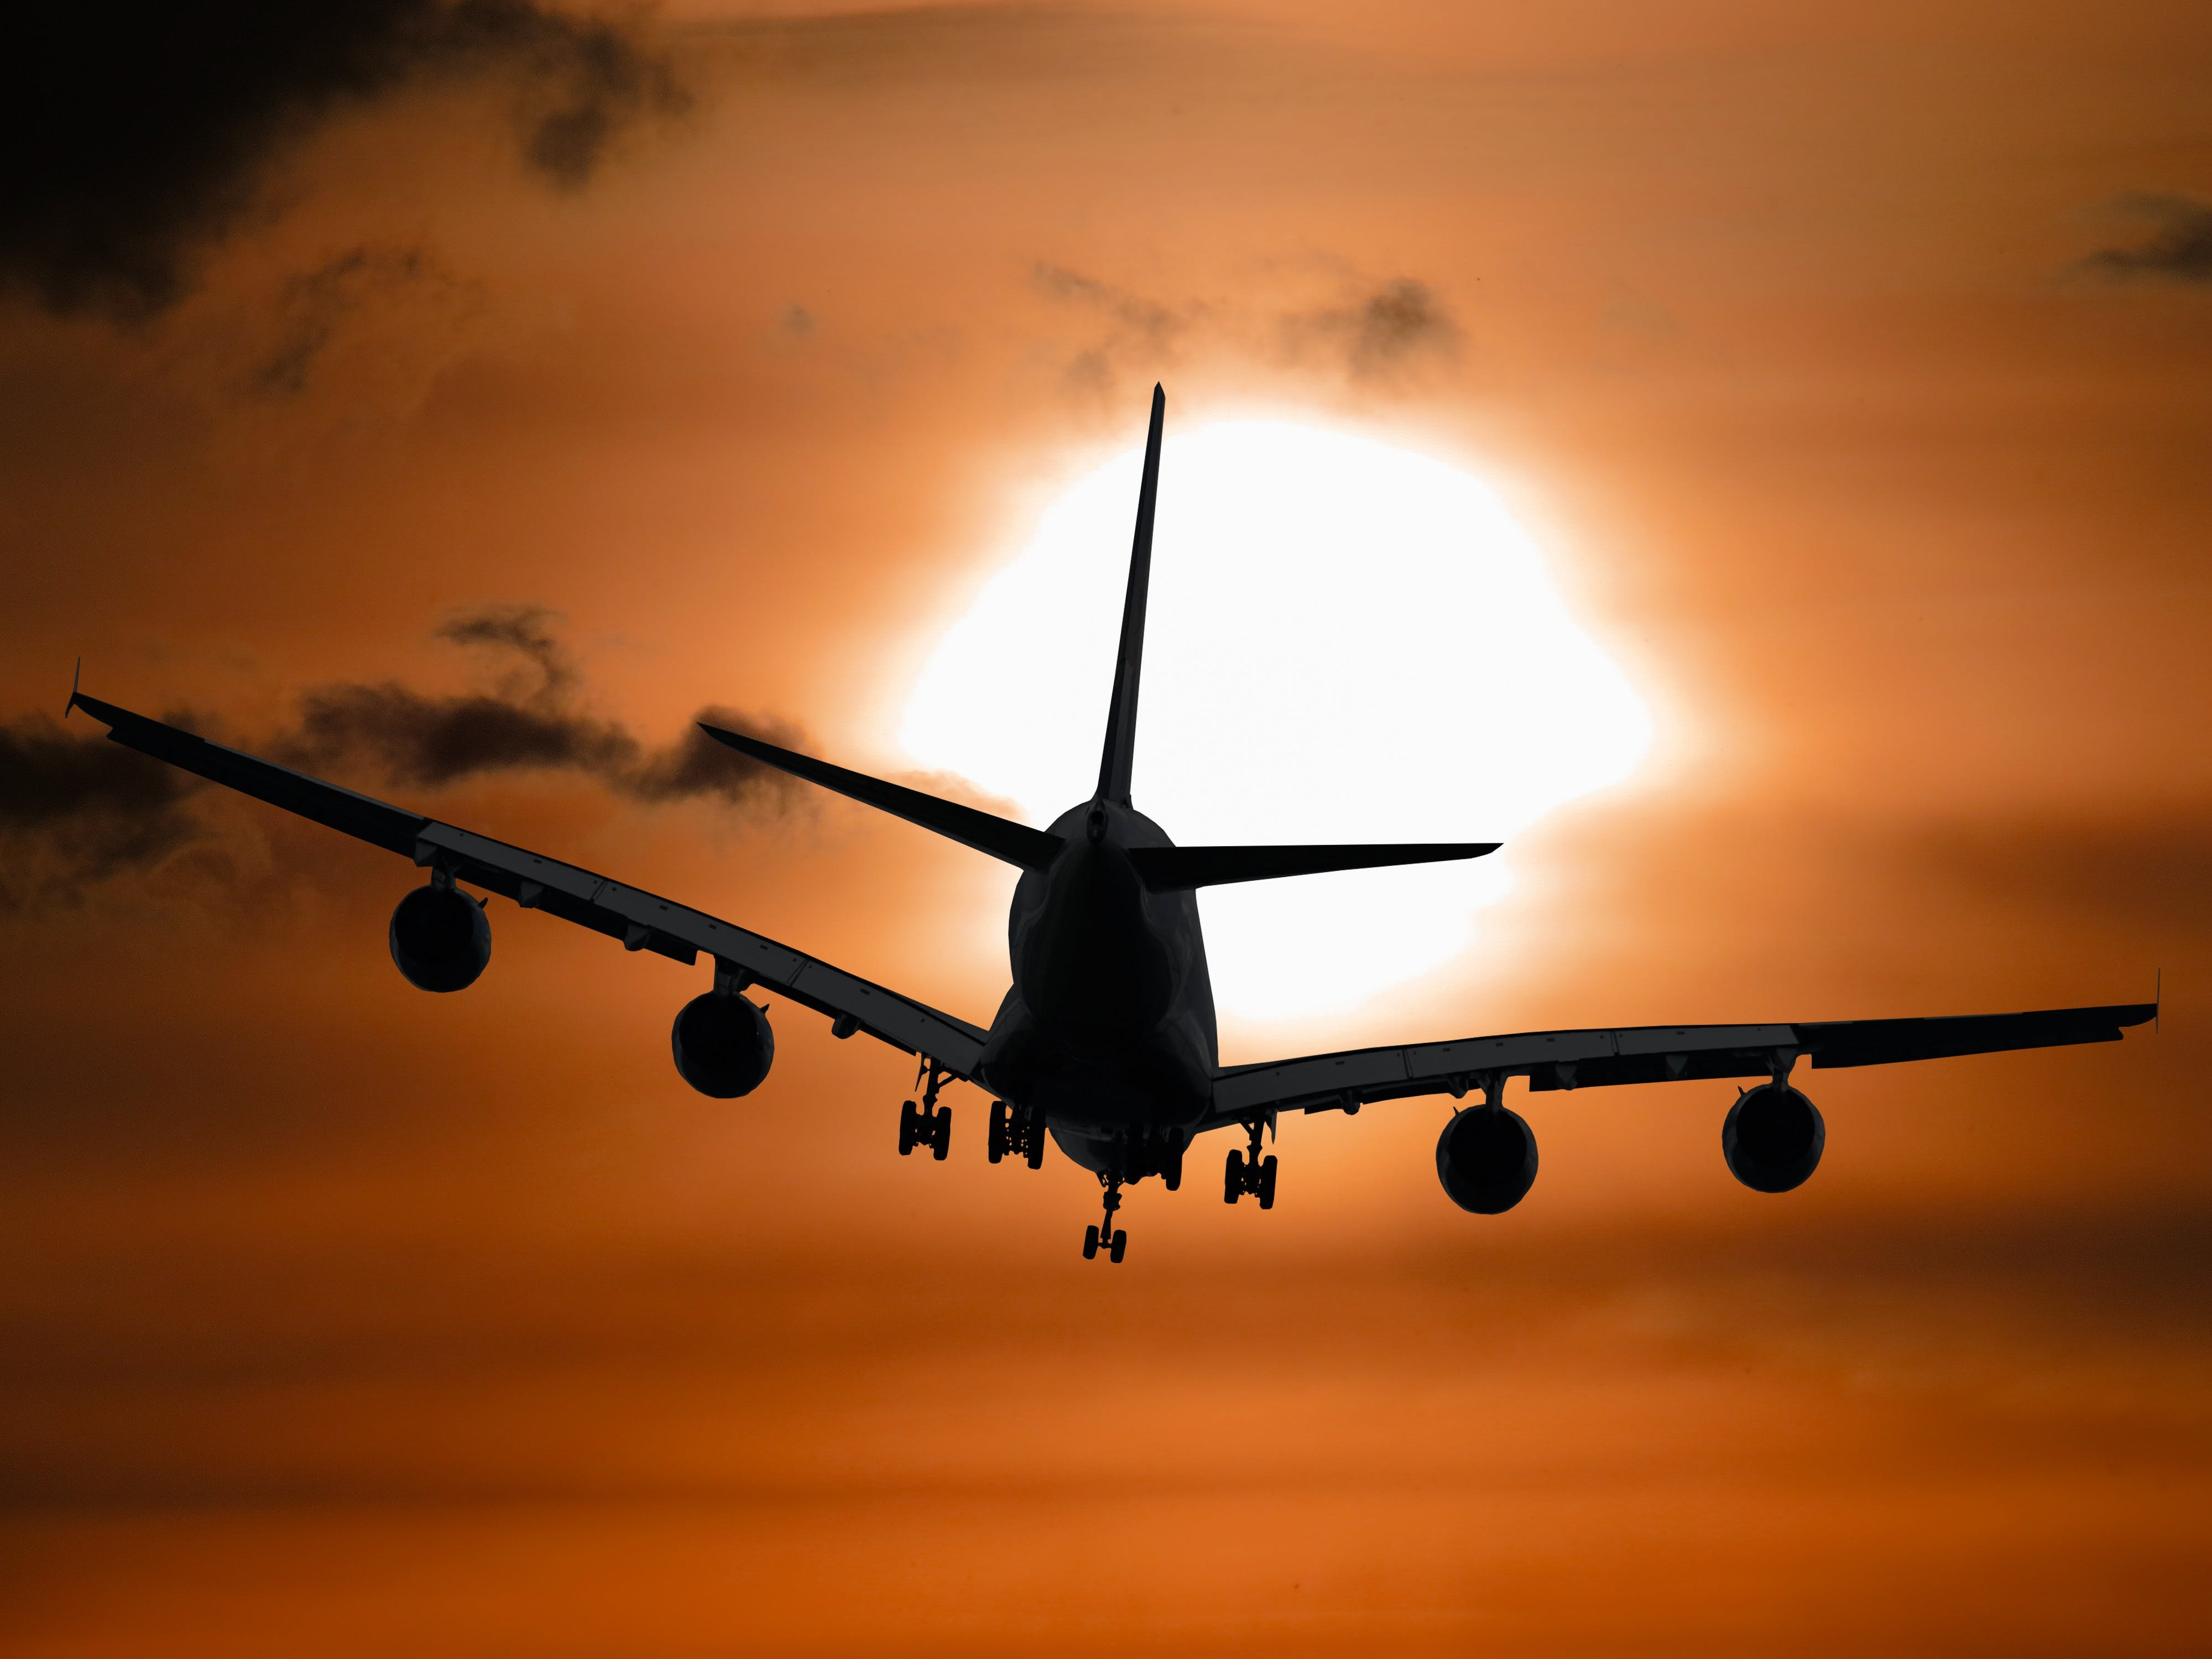 Shadow Image of a Plane Flying during Sunset